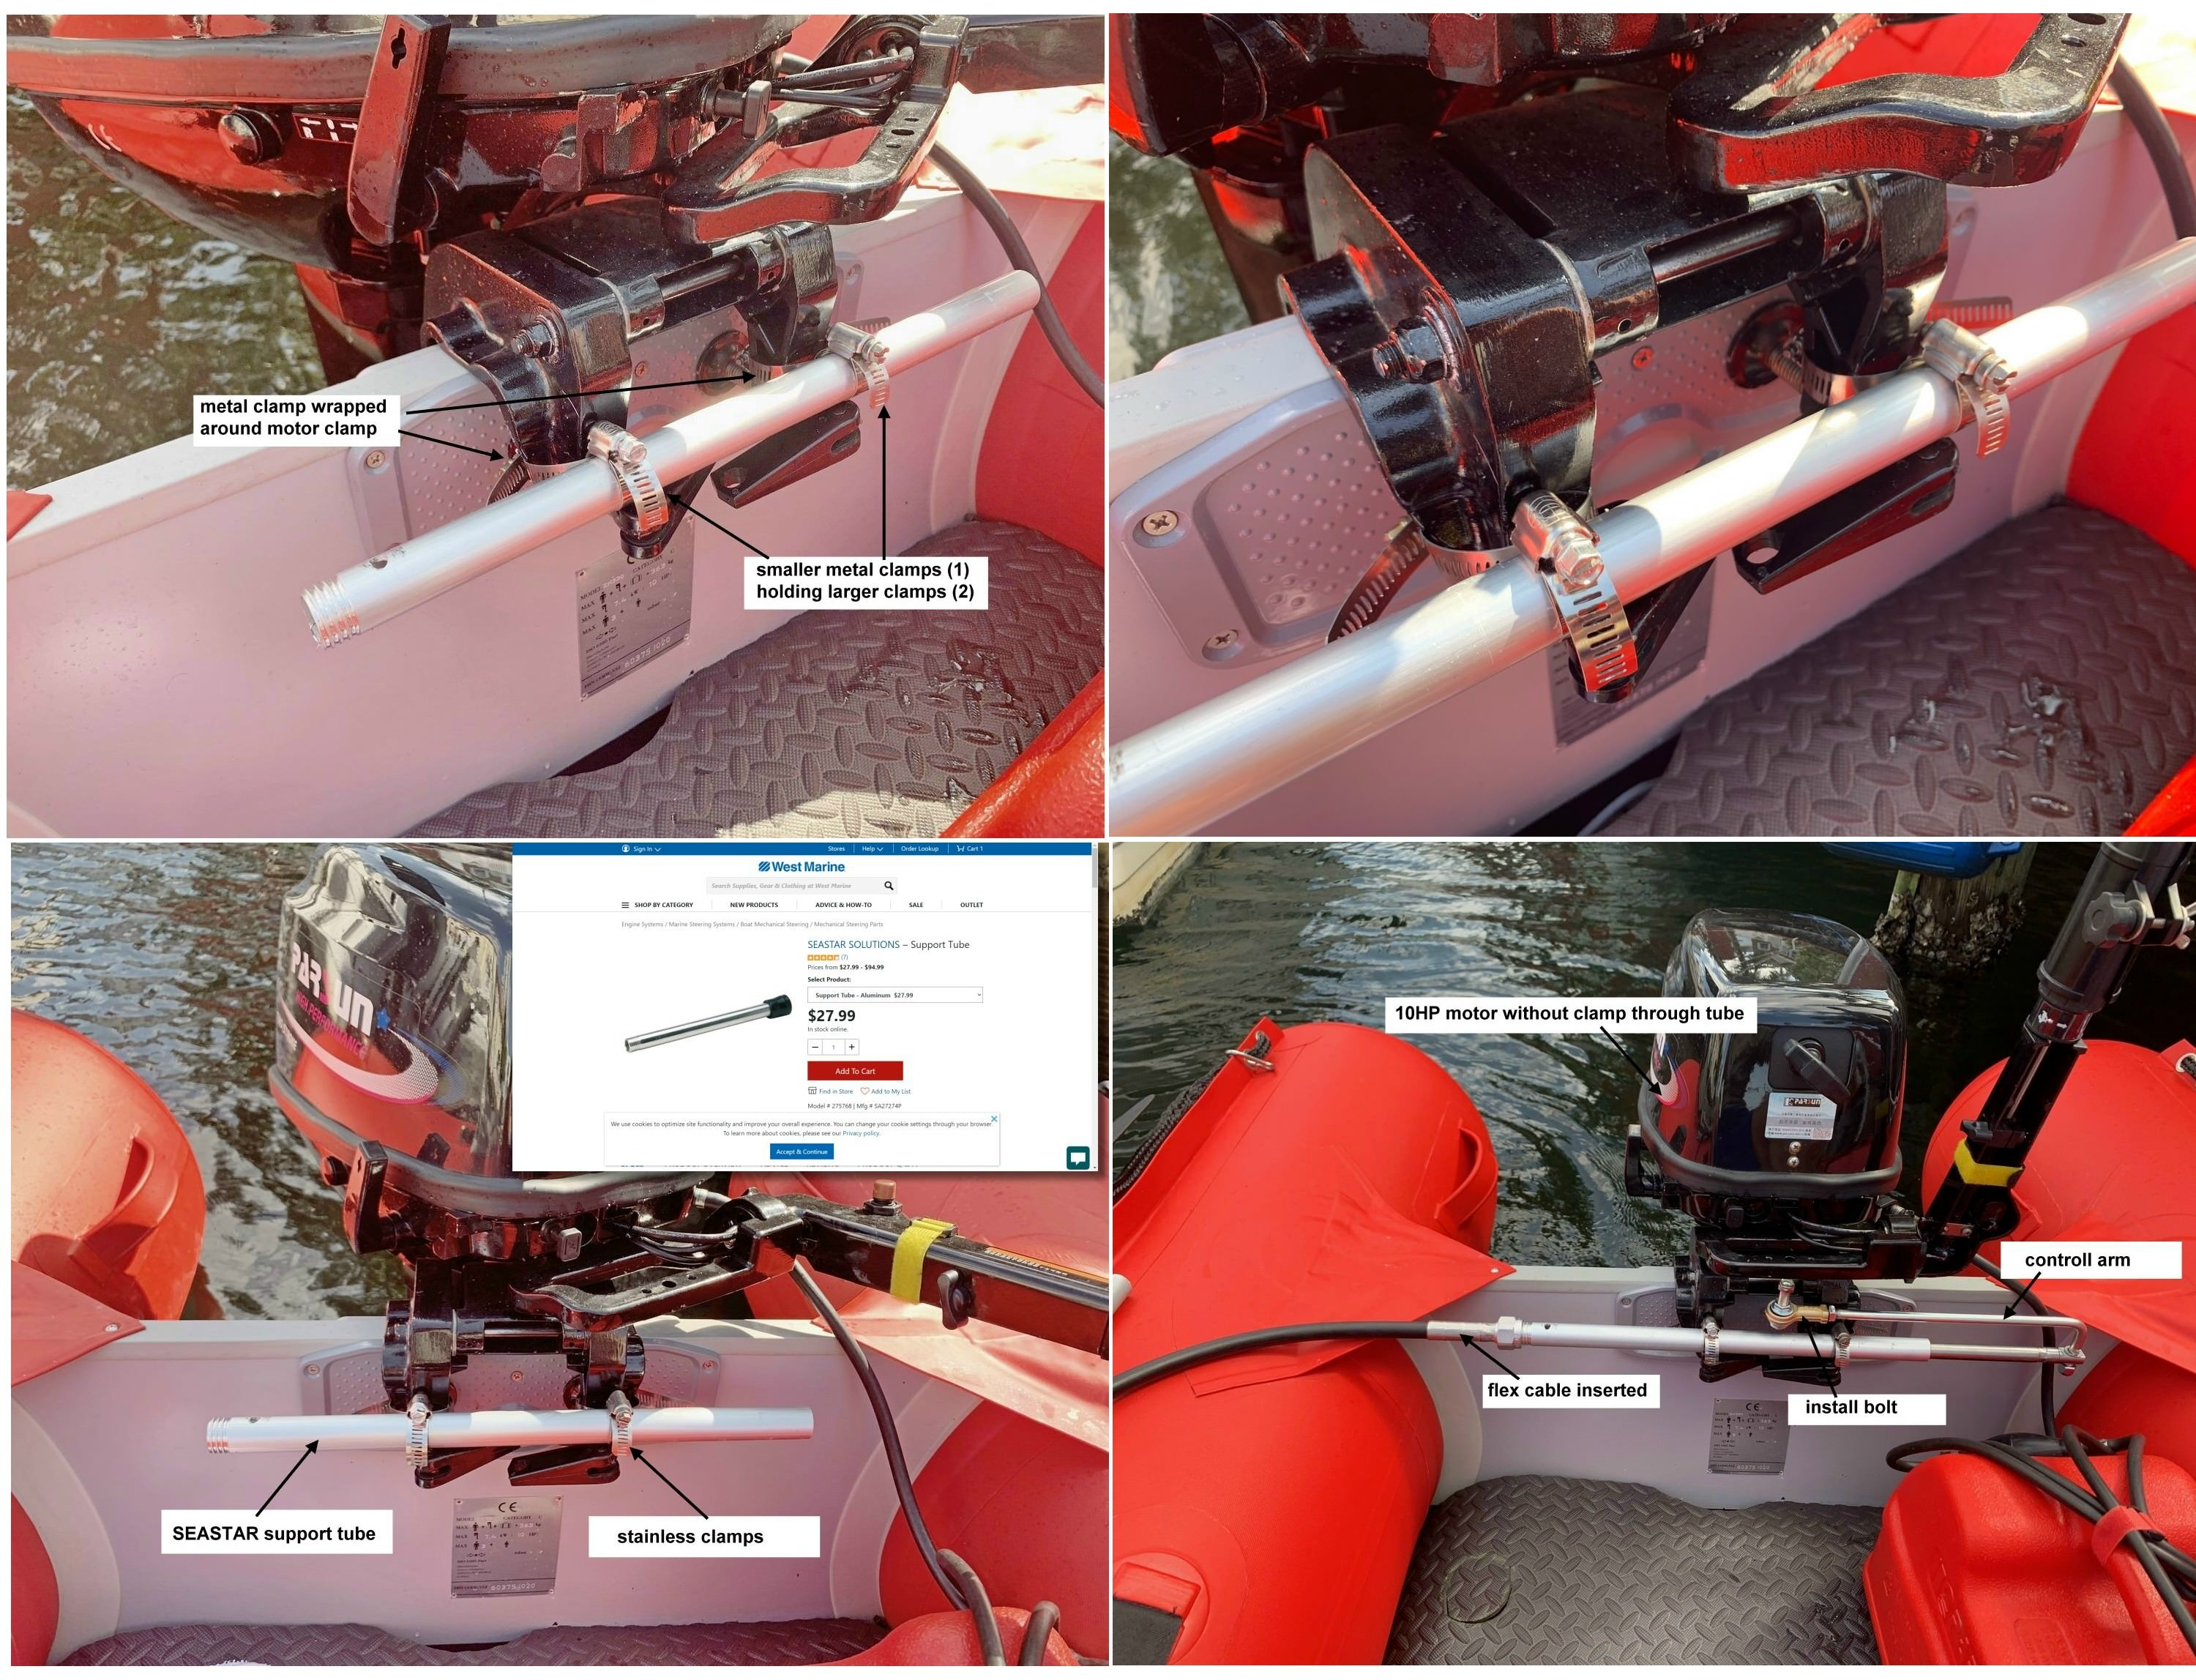 Steering tube attachment to motor without steering tube